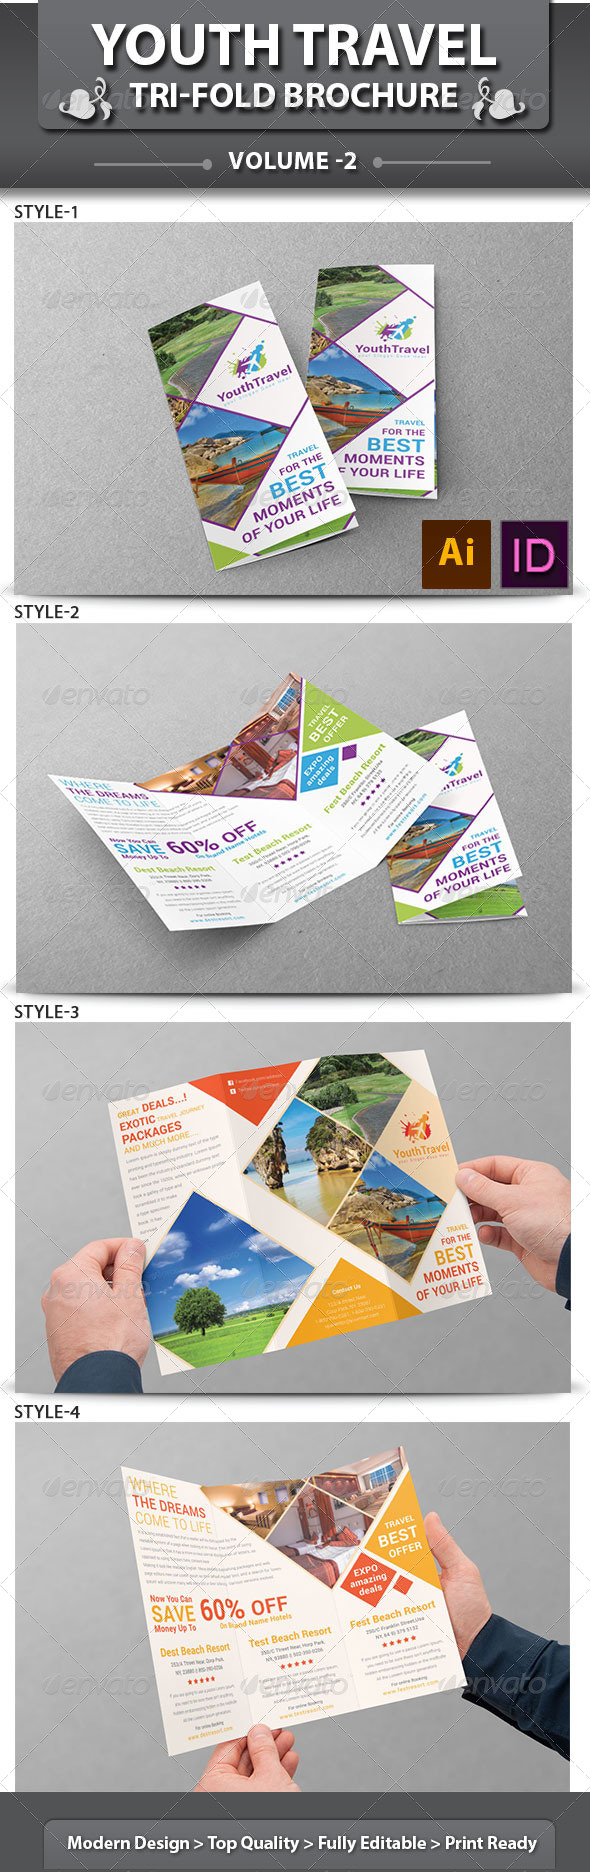 GraphicRiver Youth Travel Tri-Fold Brochure v2 6462176